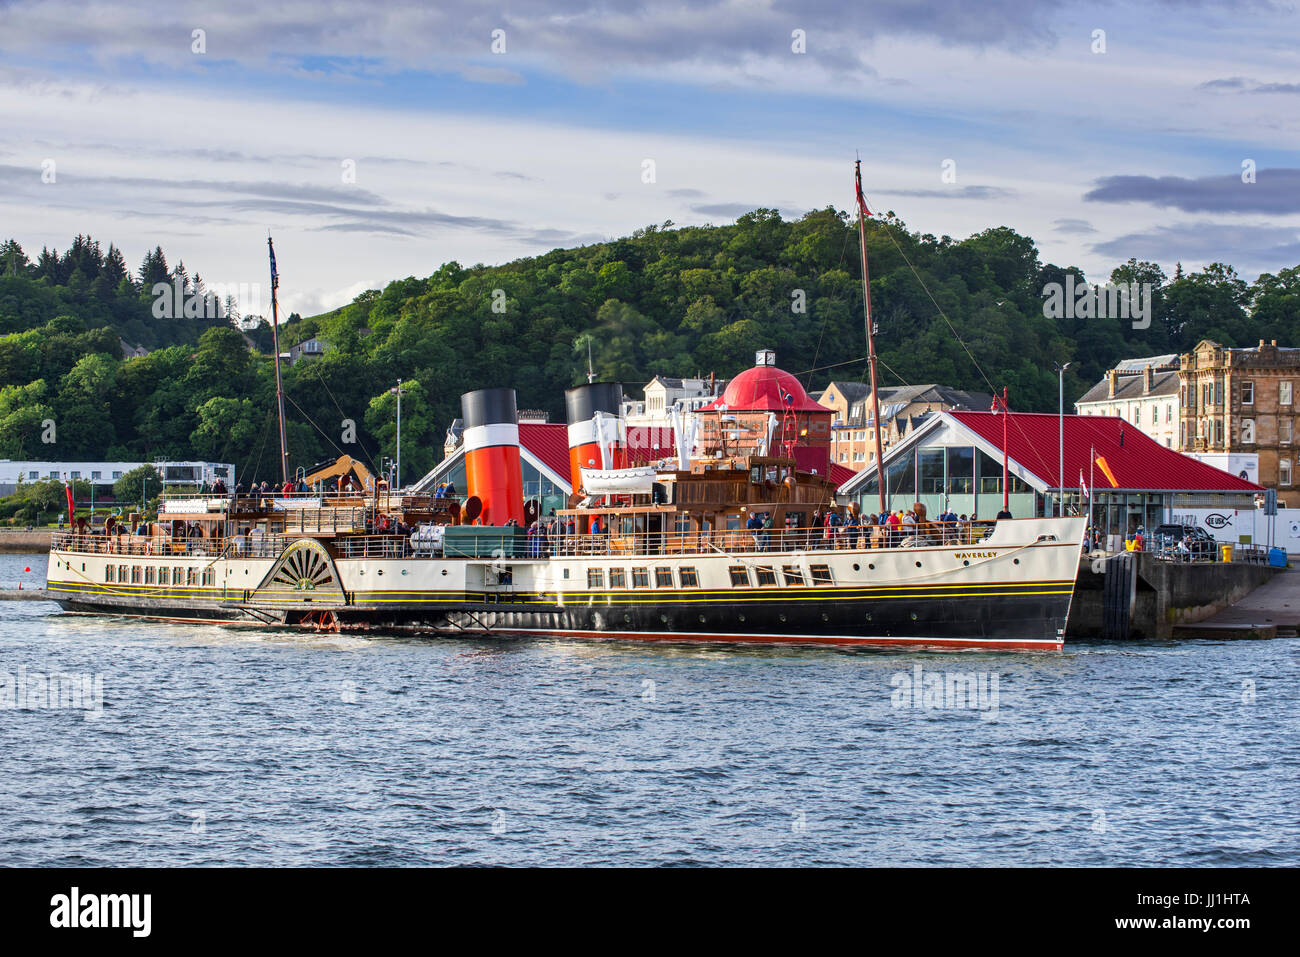 PS Waverley, last seagoing passenger-carrying paddle steamer in the port of Oban, Argyll and Bute, Scotland - Stock Image